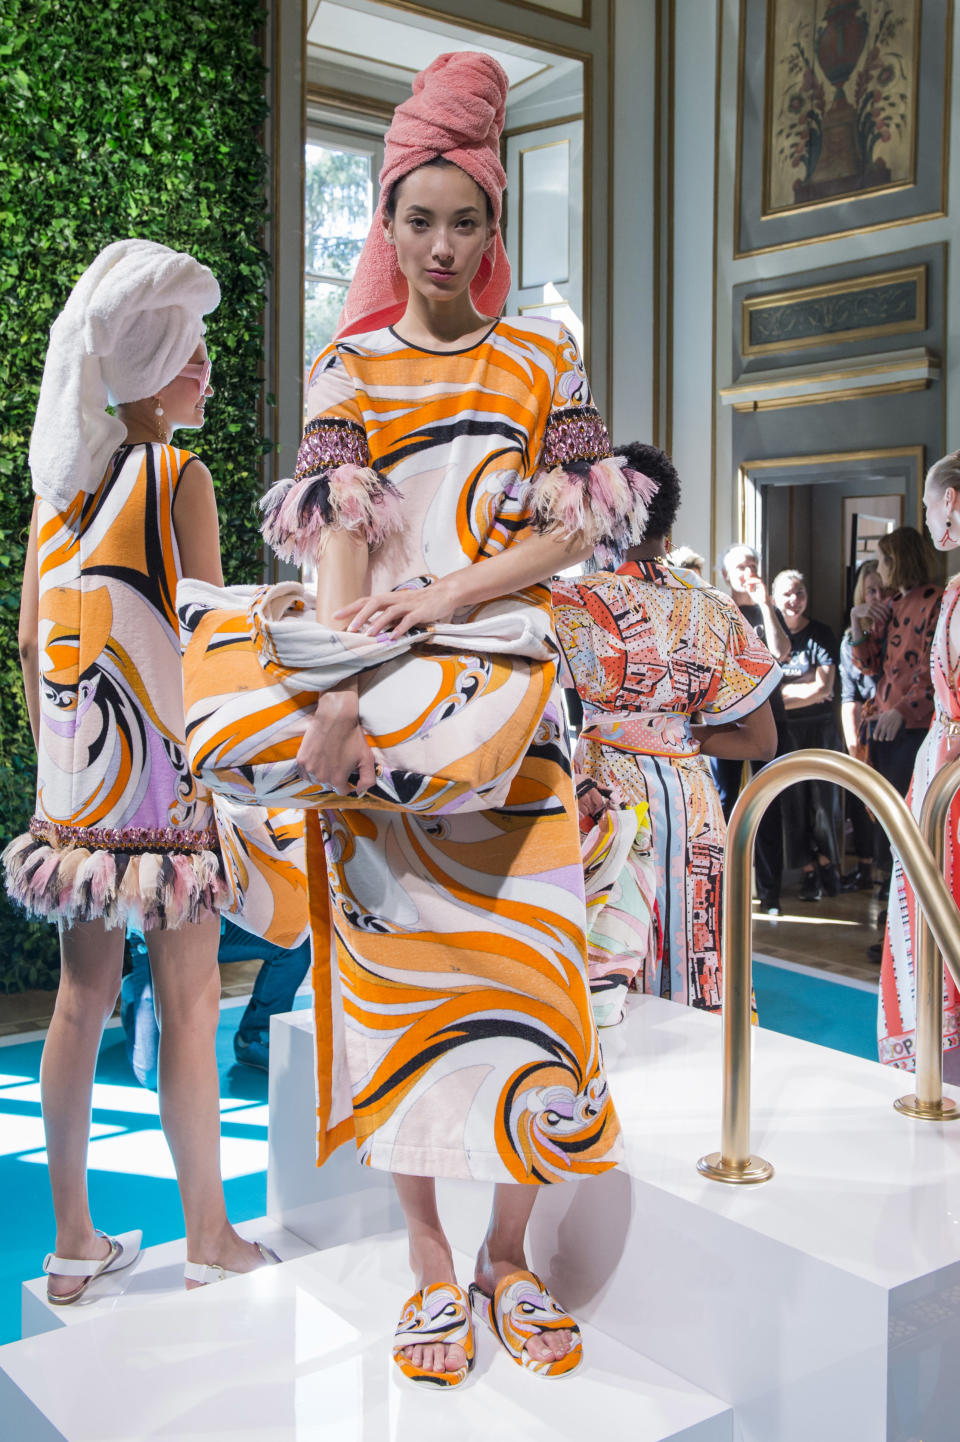 <p><i>Feather and jewel sleeved graphic dress from the SS18 Emilio Pucci collection. (Photo: ImaxTree) </i></p>